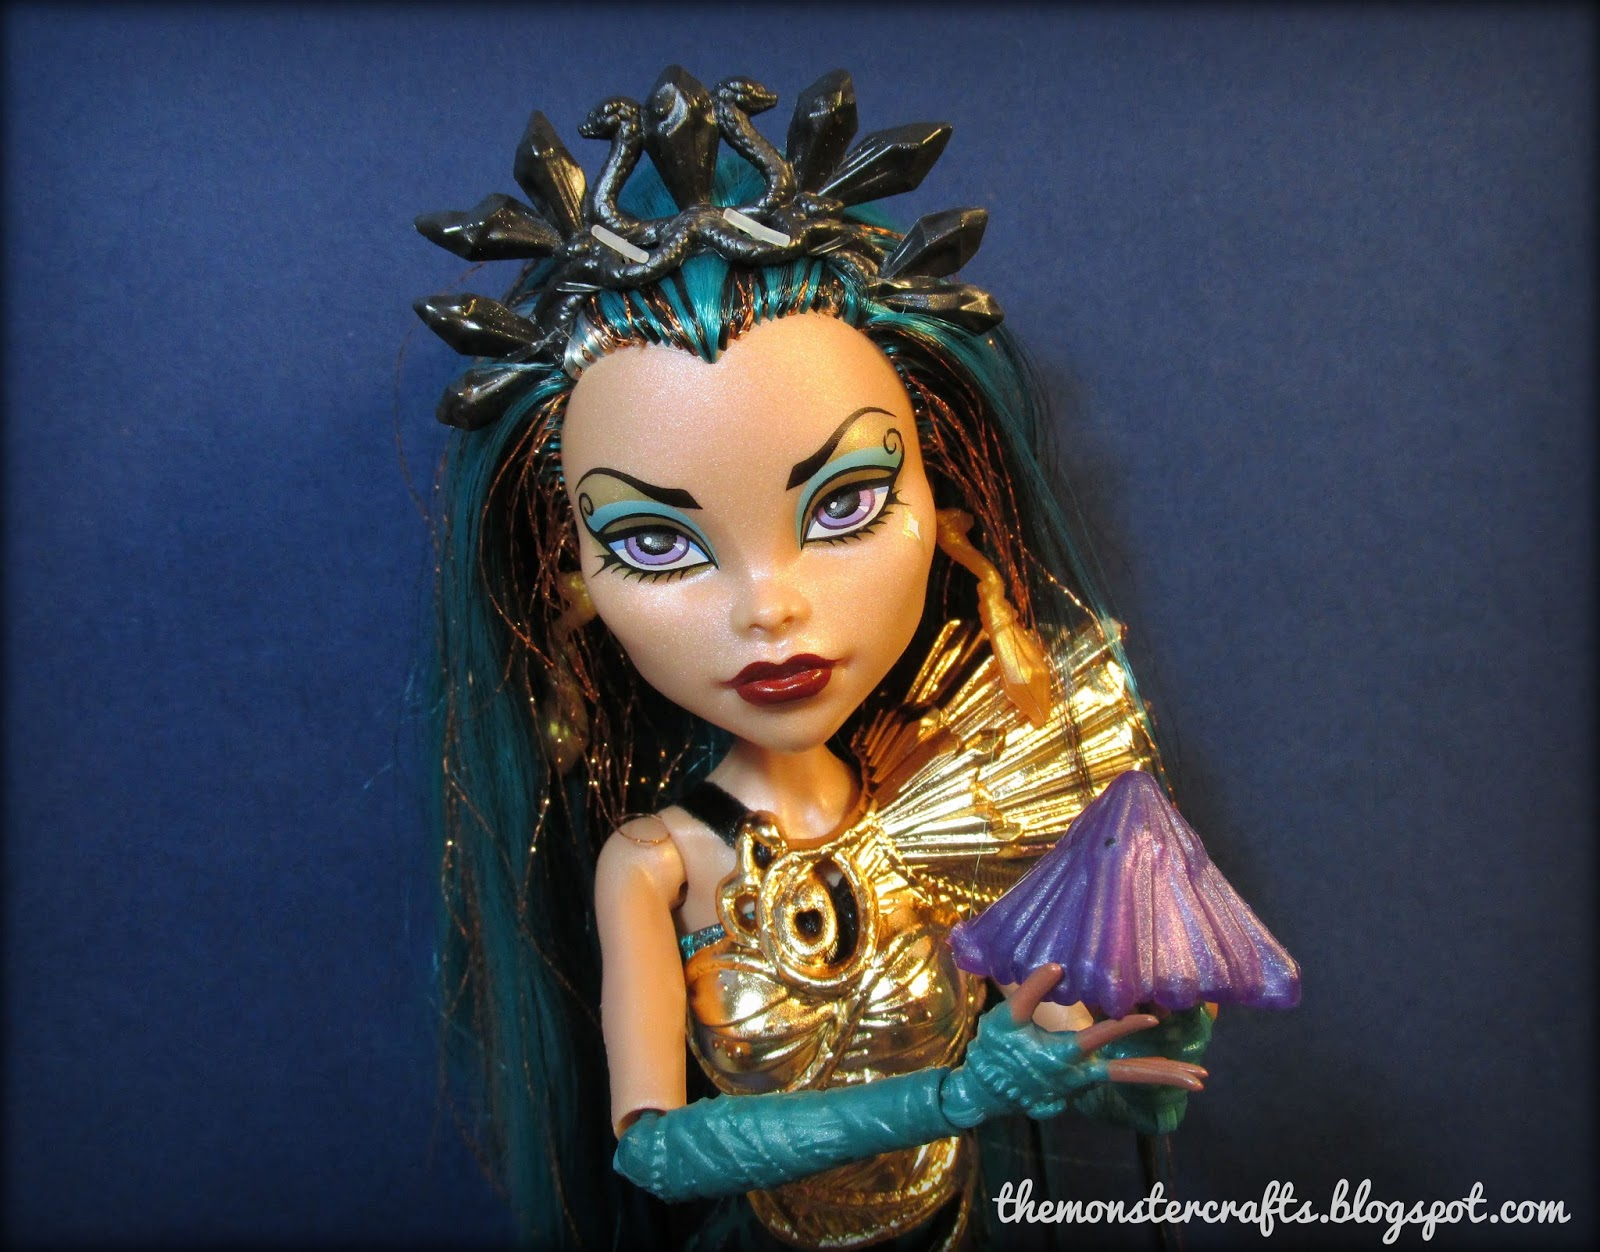 Monster crafts doll review boo york boo york nefera de nile - Nefera de nile ...